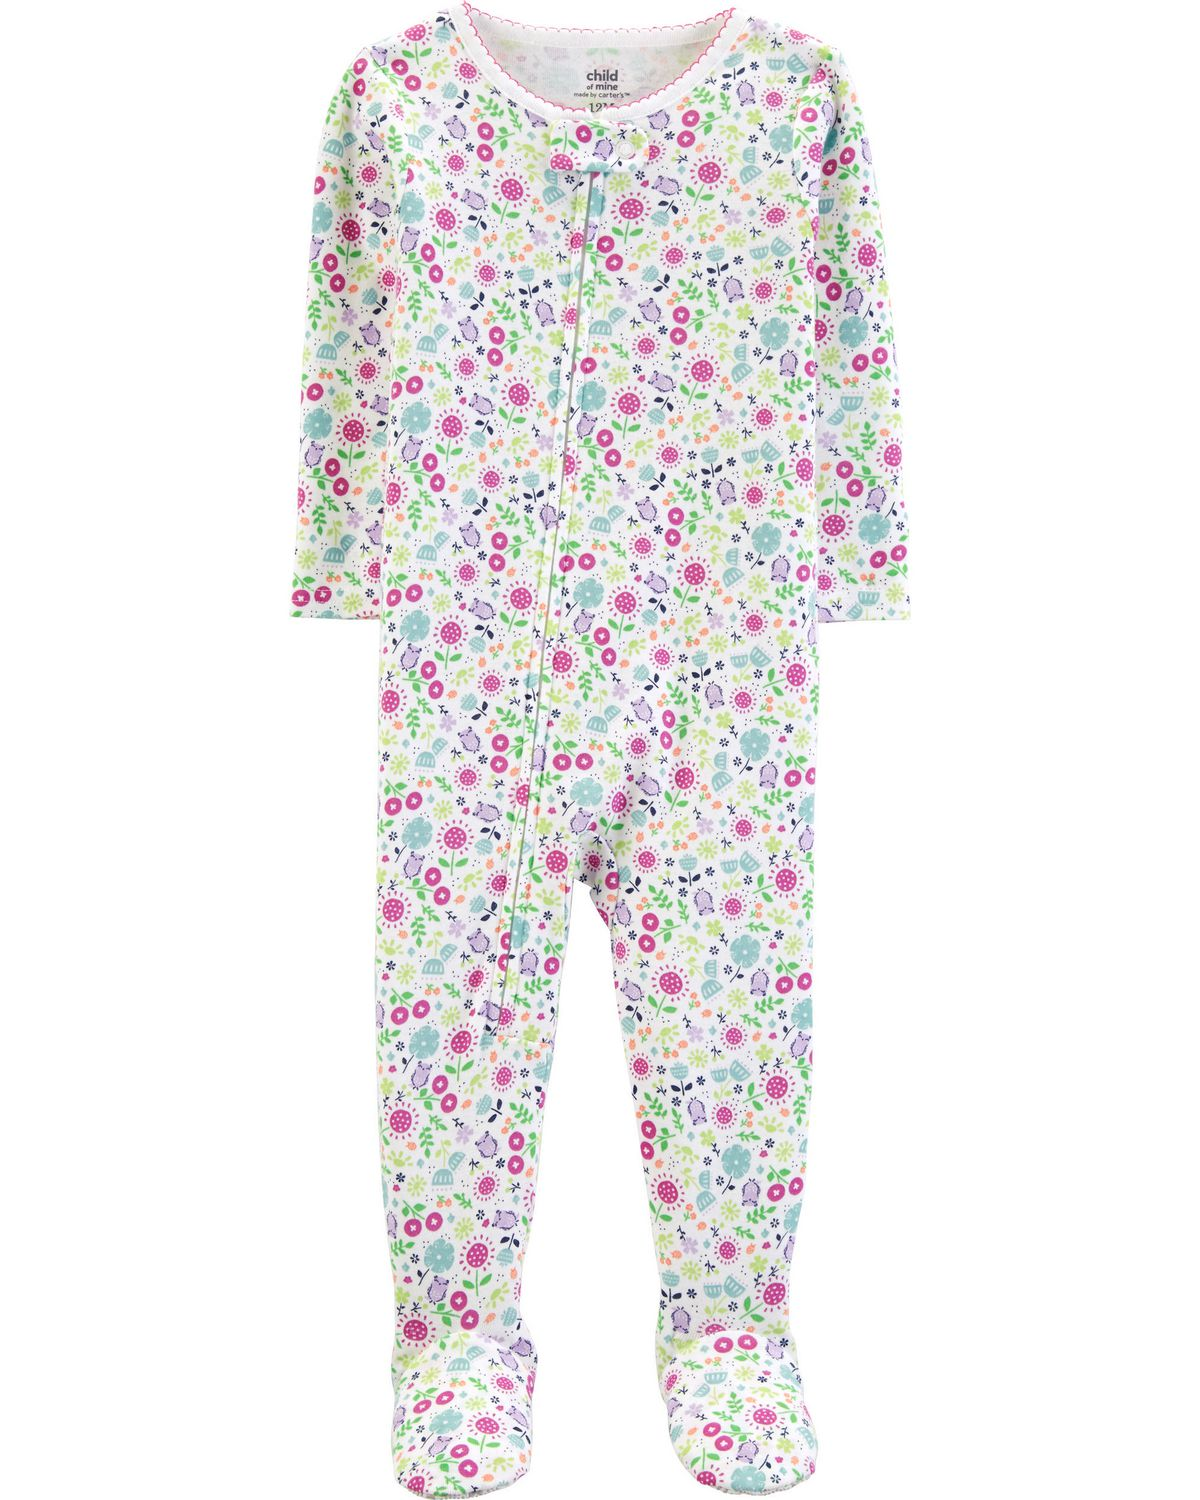 a33cd31f7b5f Child of Mine made by Carter s infant girls Blanket Fleece- floral ...